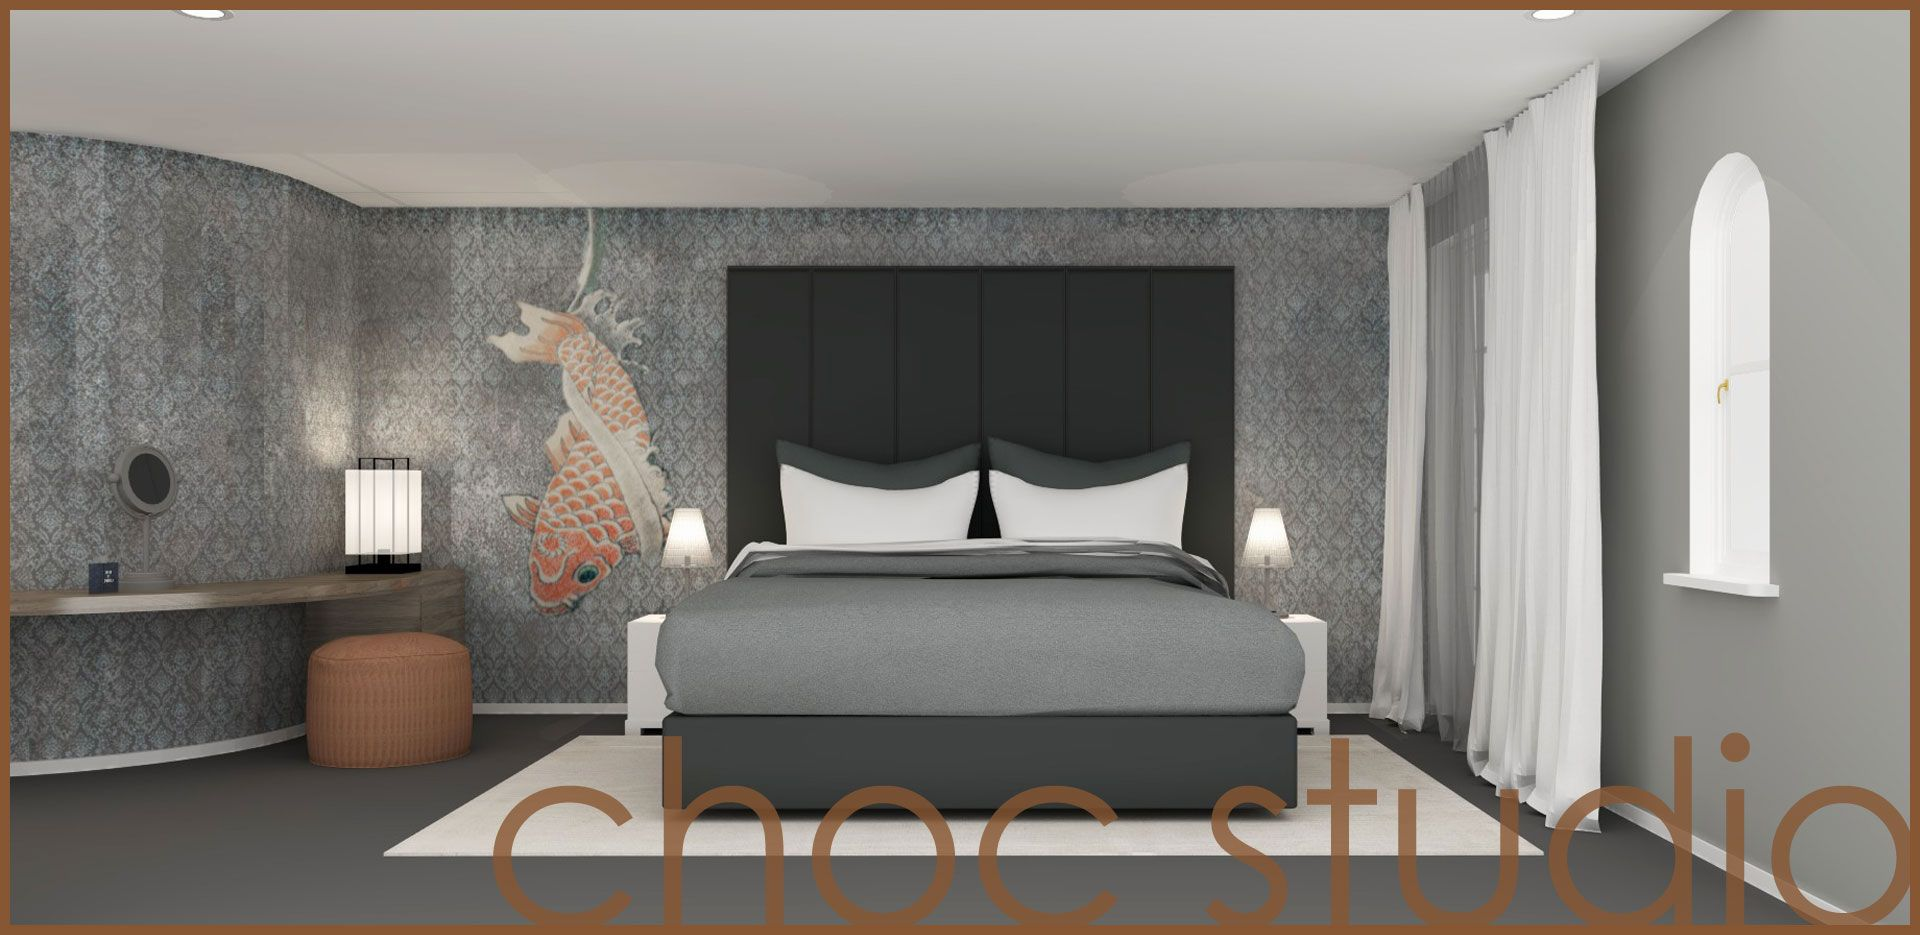 Masterbedroom - project by choc studio #randering #bedroom #interior_design #wallpaper_wall_and_deco